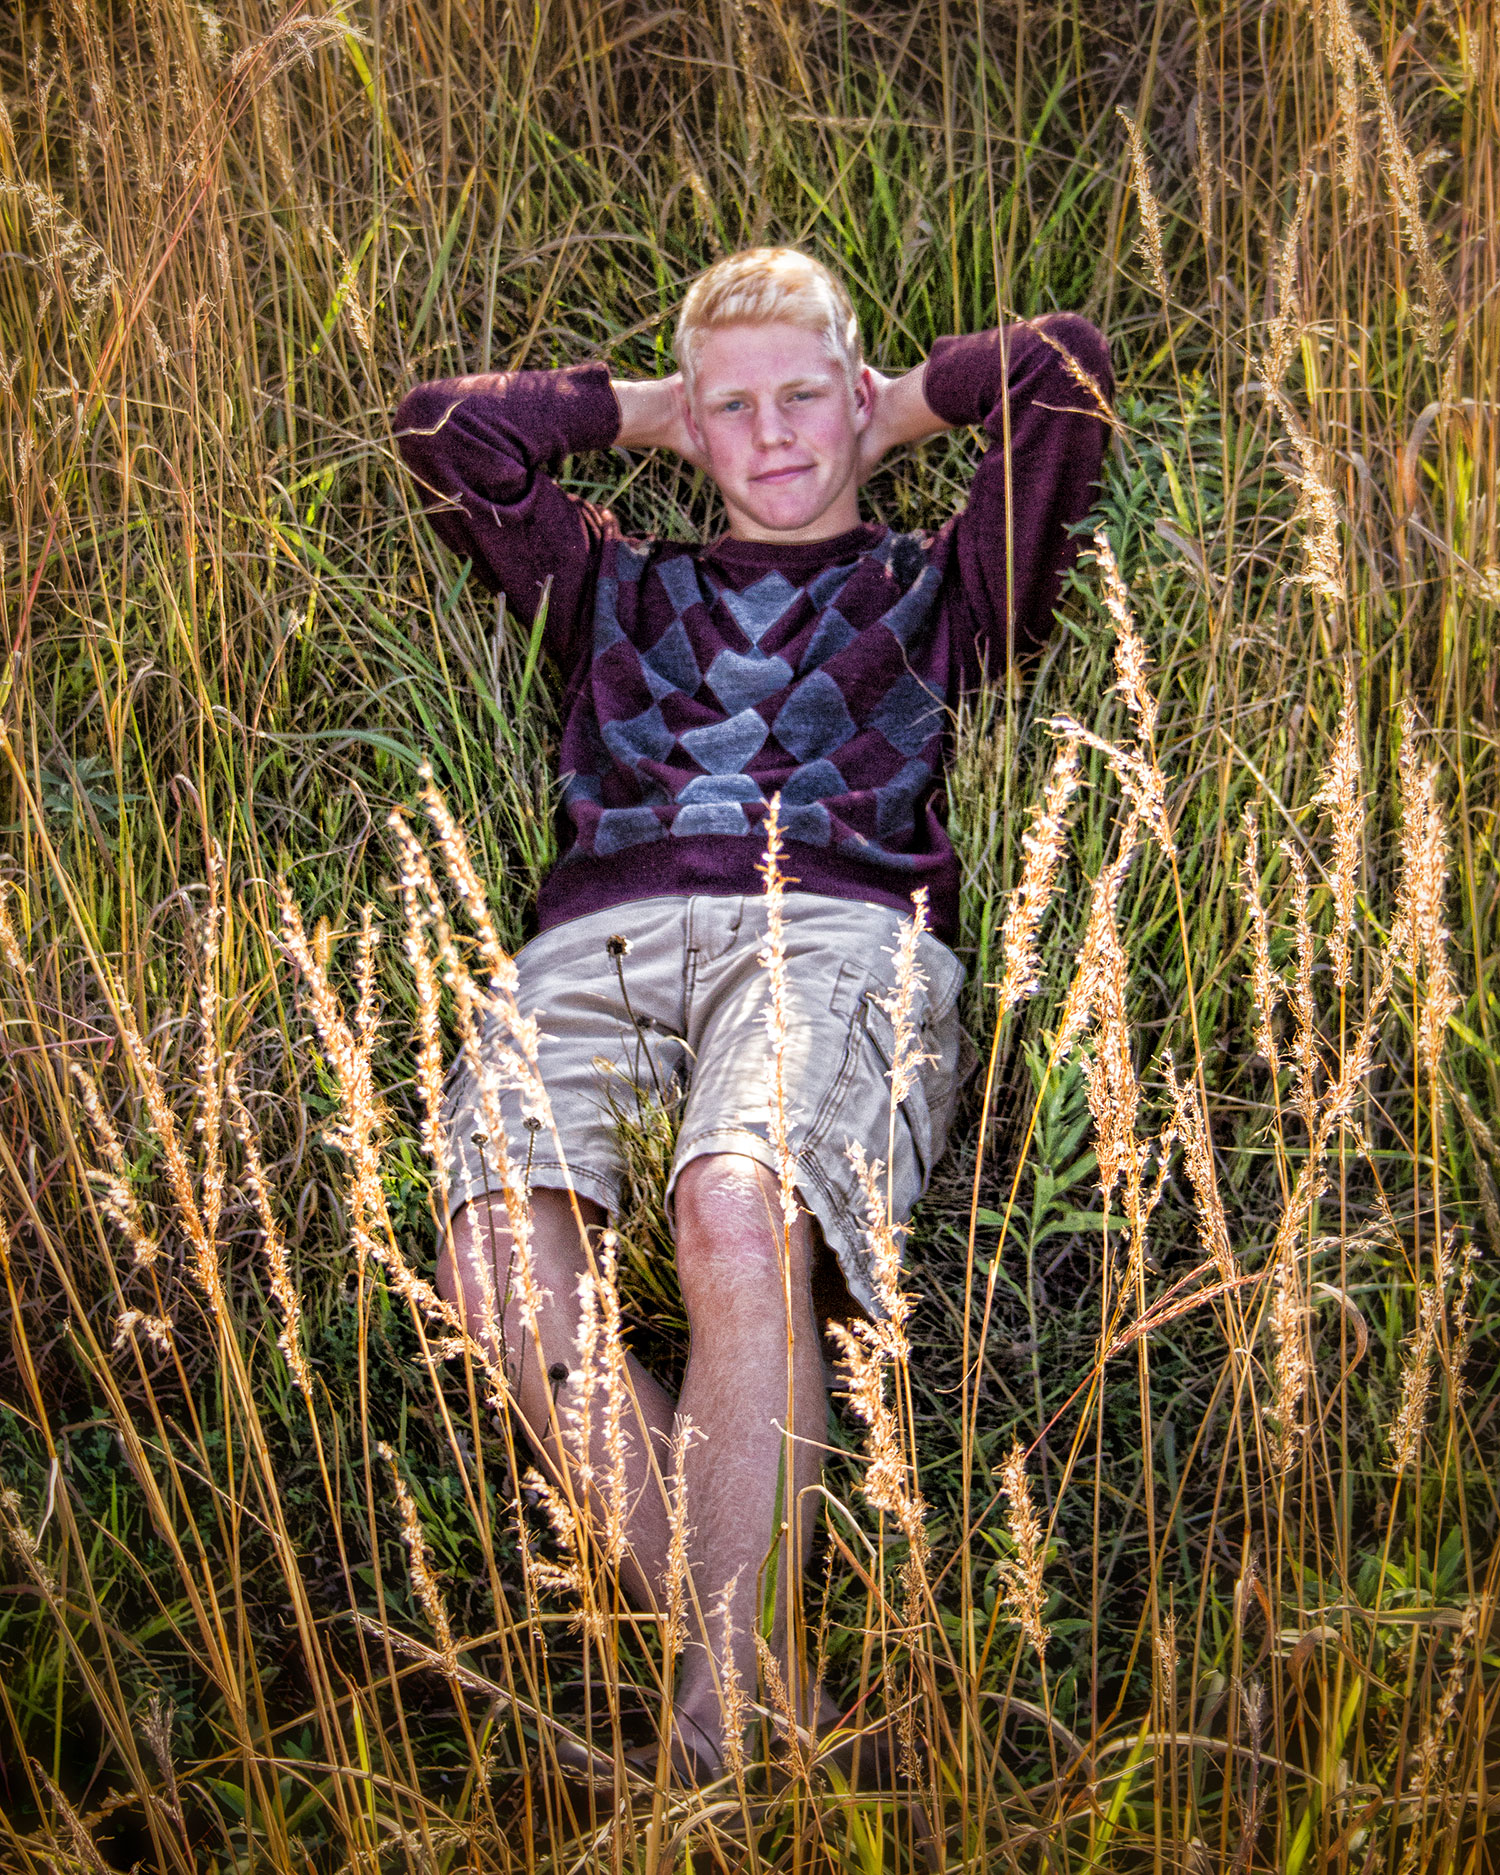 High School Senior in grass